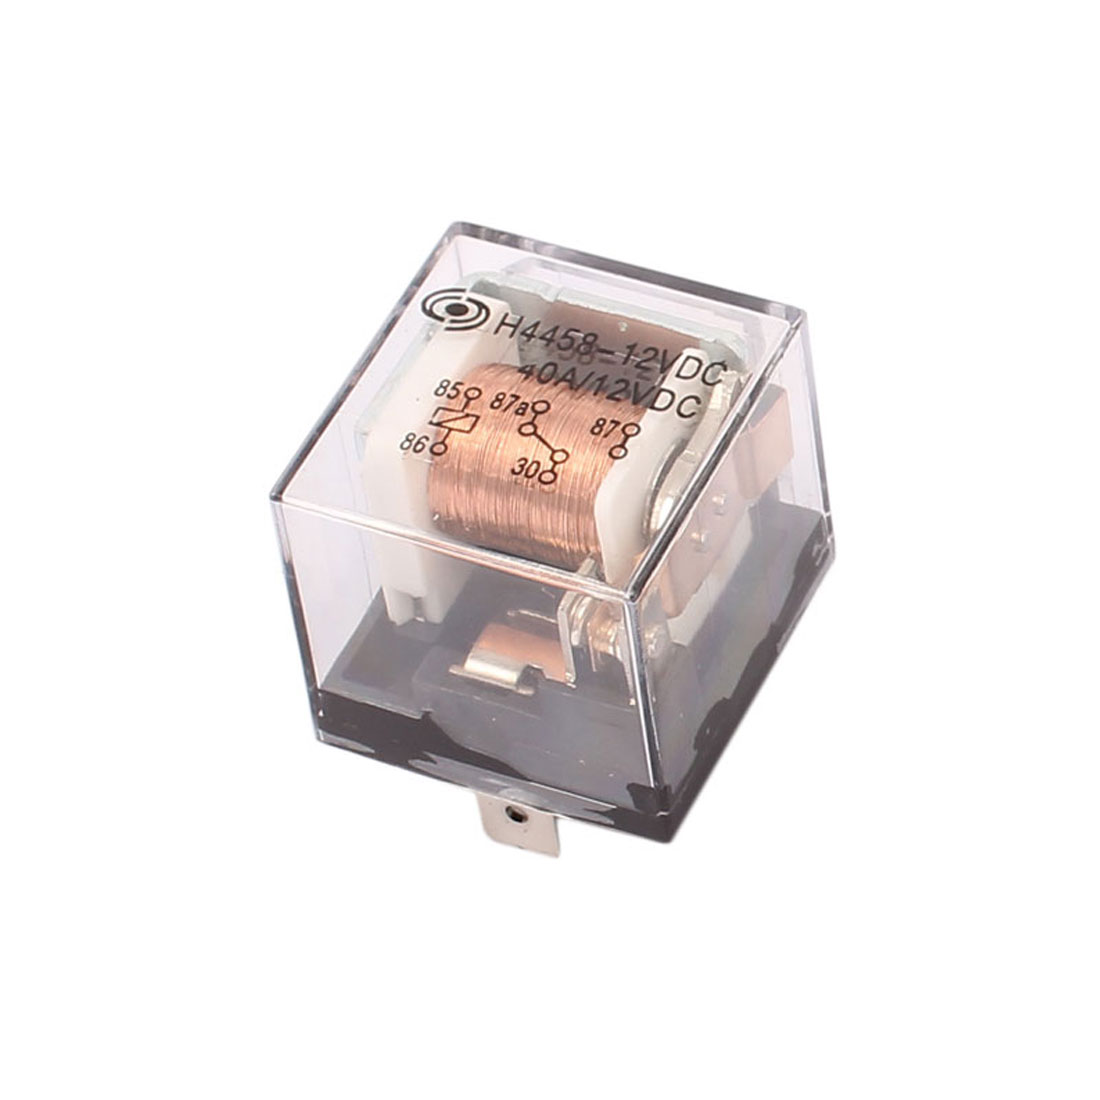 H4458 DC 12V 40A 5 Pin SPDT Power Relay w LED Light Colorless Shell